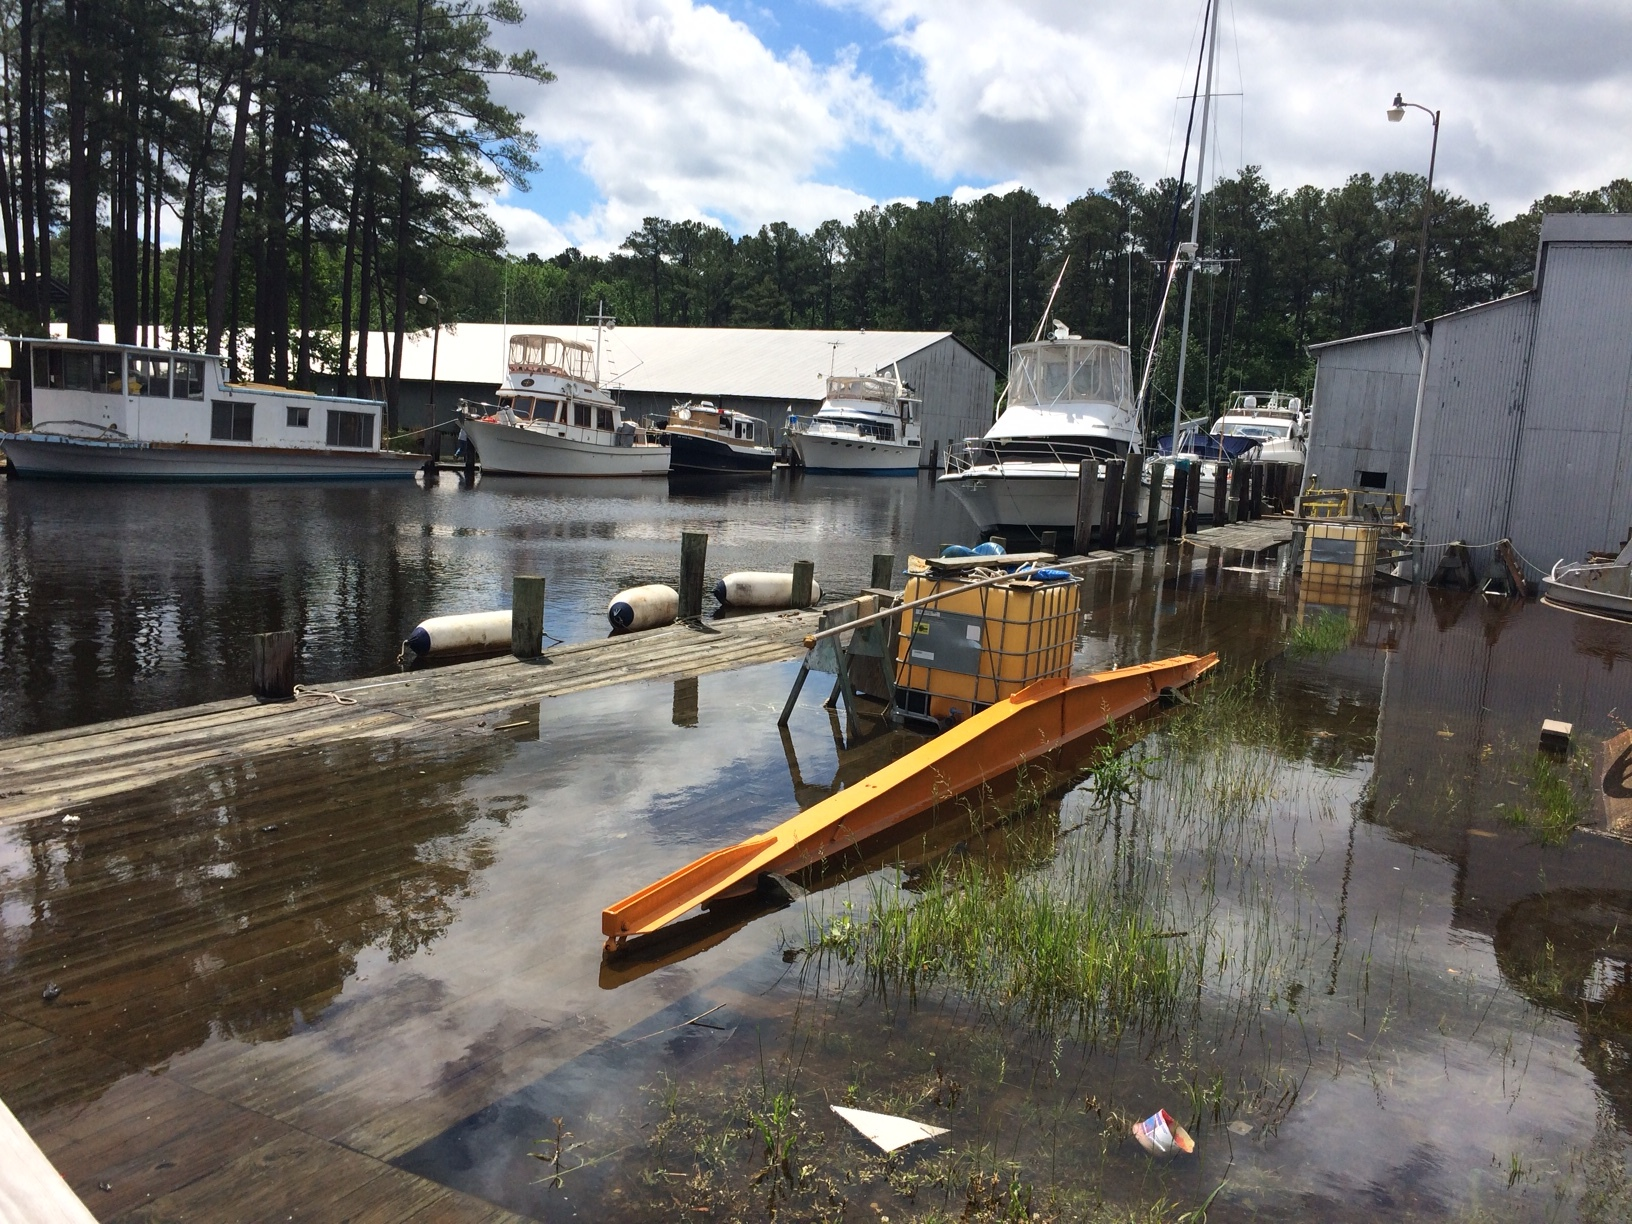 Getting to the boat was a challenge and unloading was out of the question.